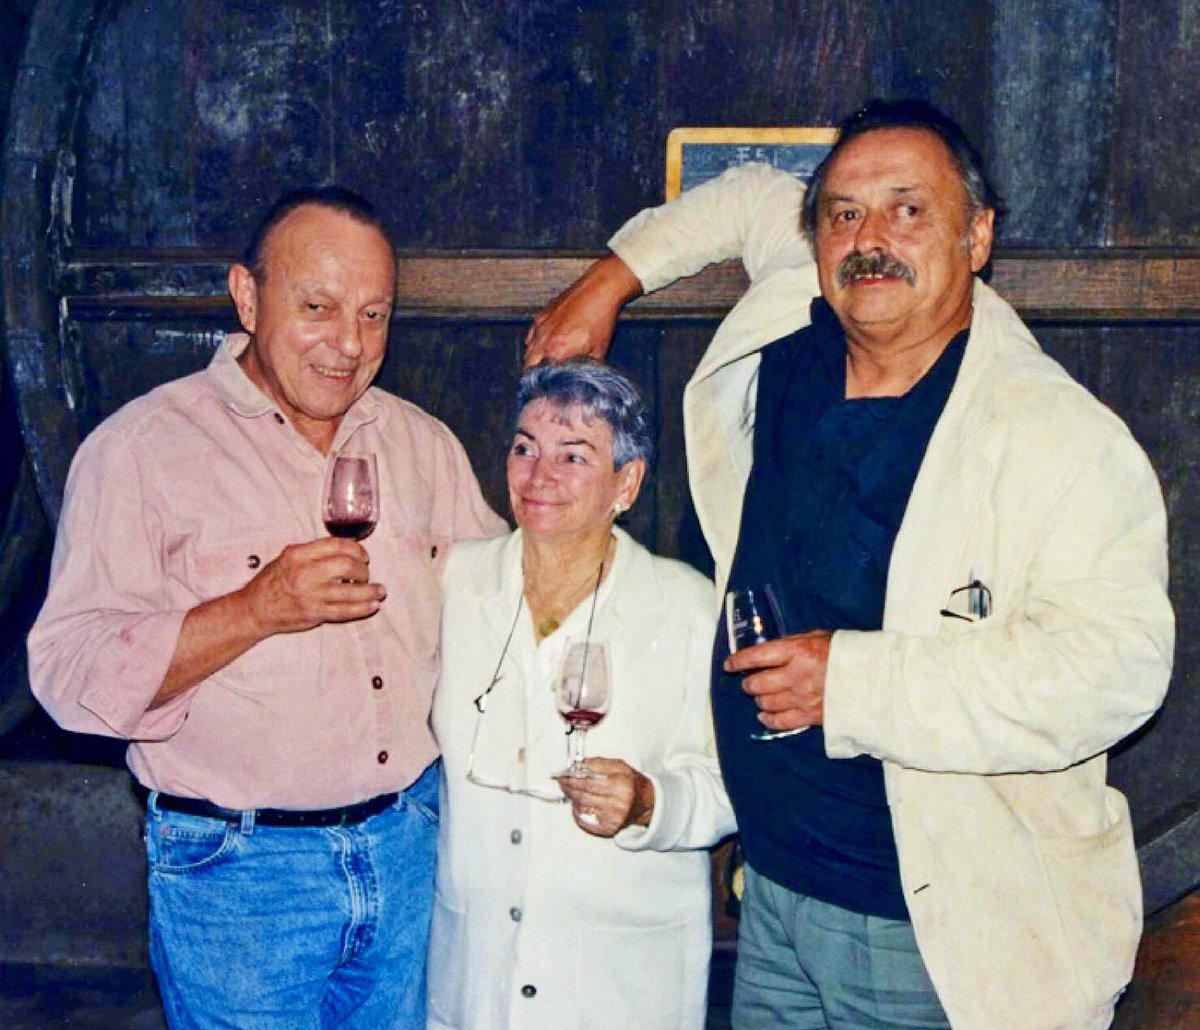 """""""Whiskey is lonely while wine has its lover, food."""" Remembering bon vivant, Jim Harrison. https://t.co/thJsOxGnHv https://t.co/PGHCx2NwE6"""